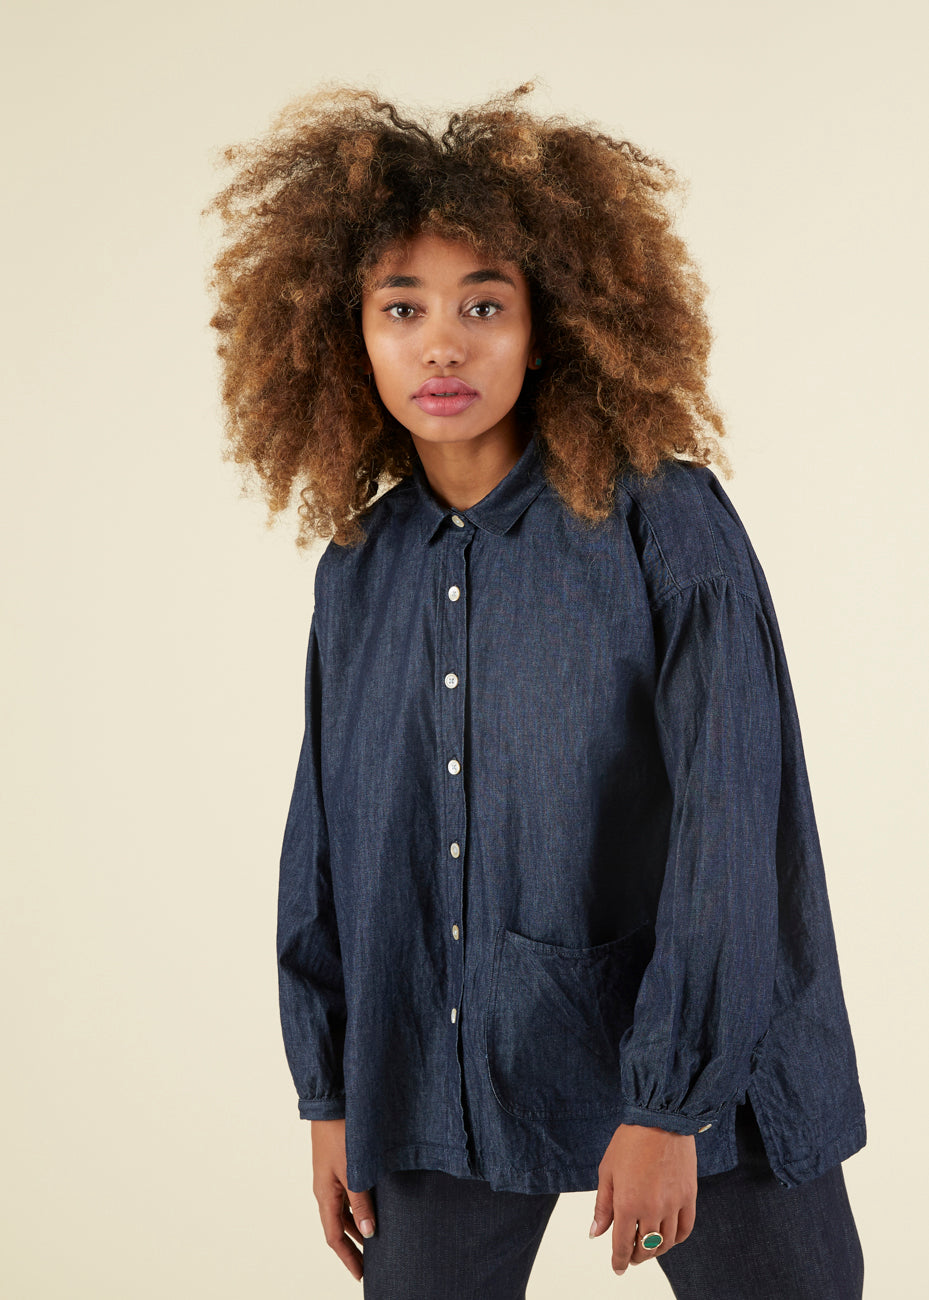 Uqnatu Long Sleeve Smock Shirt